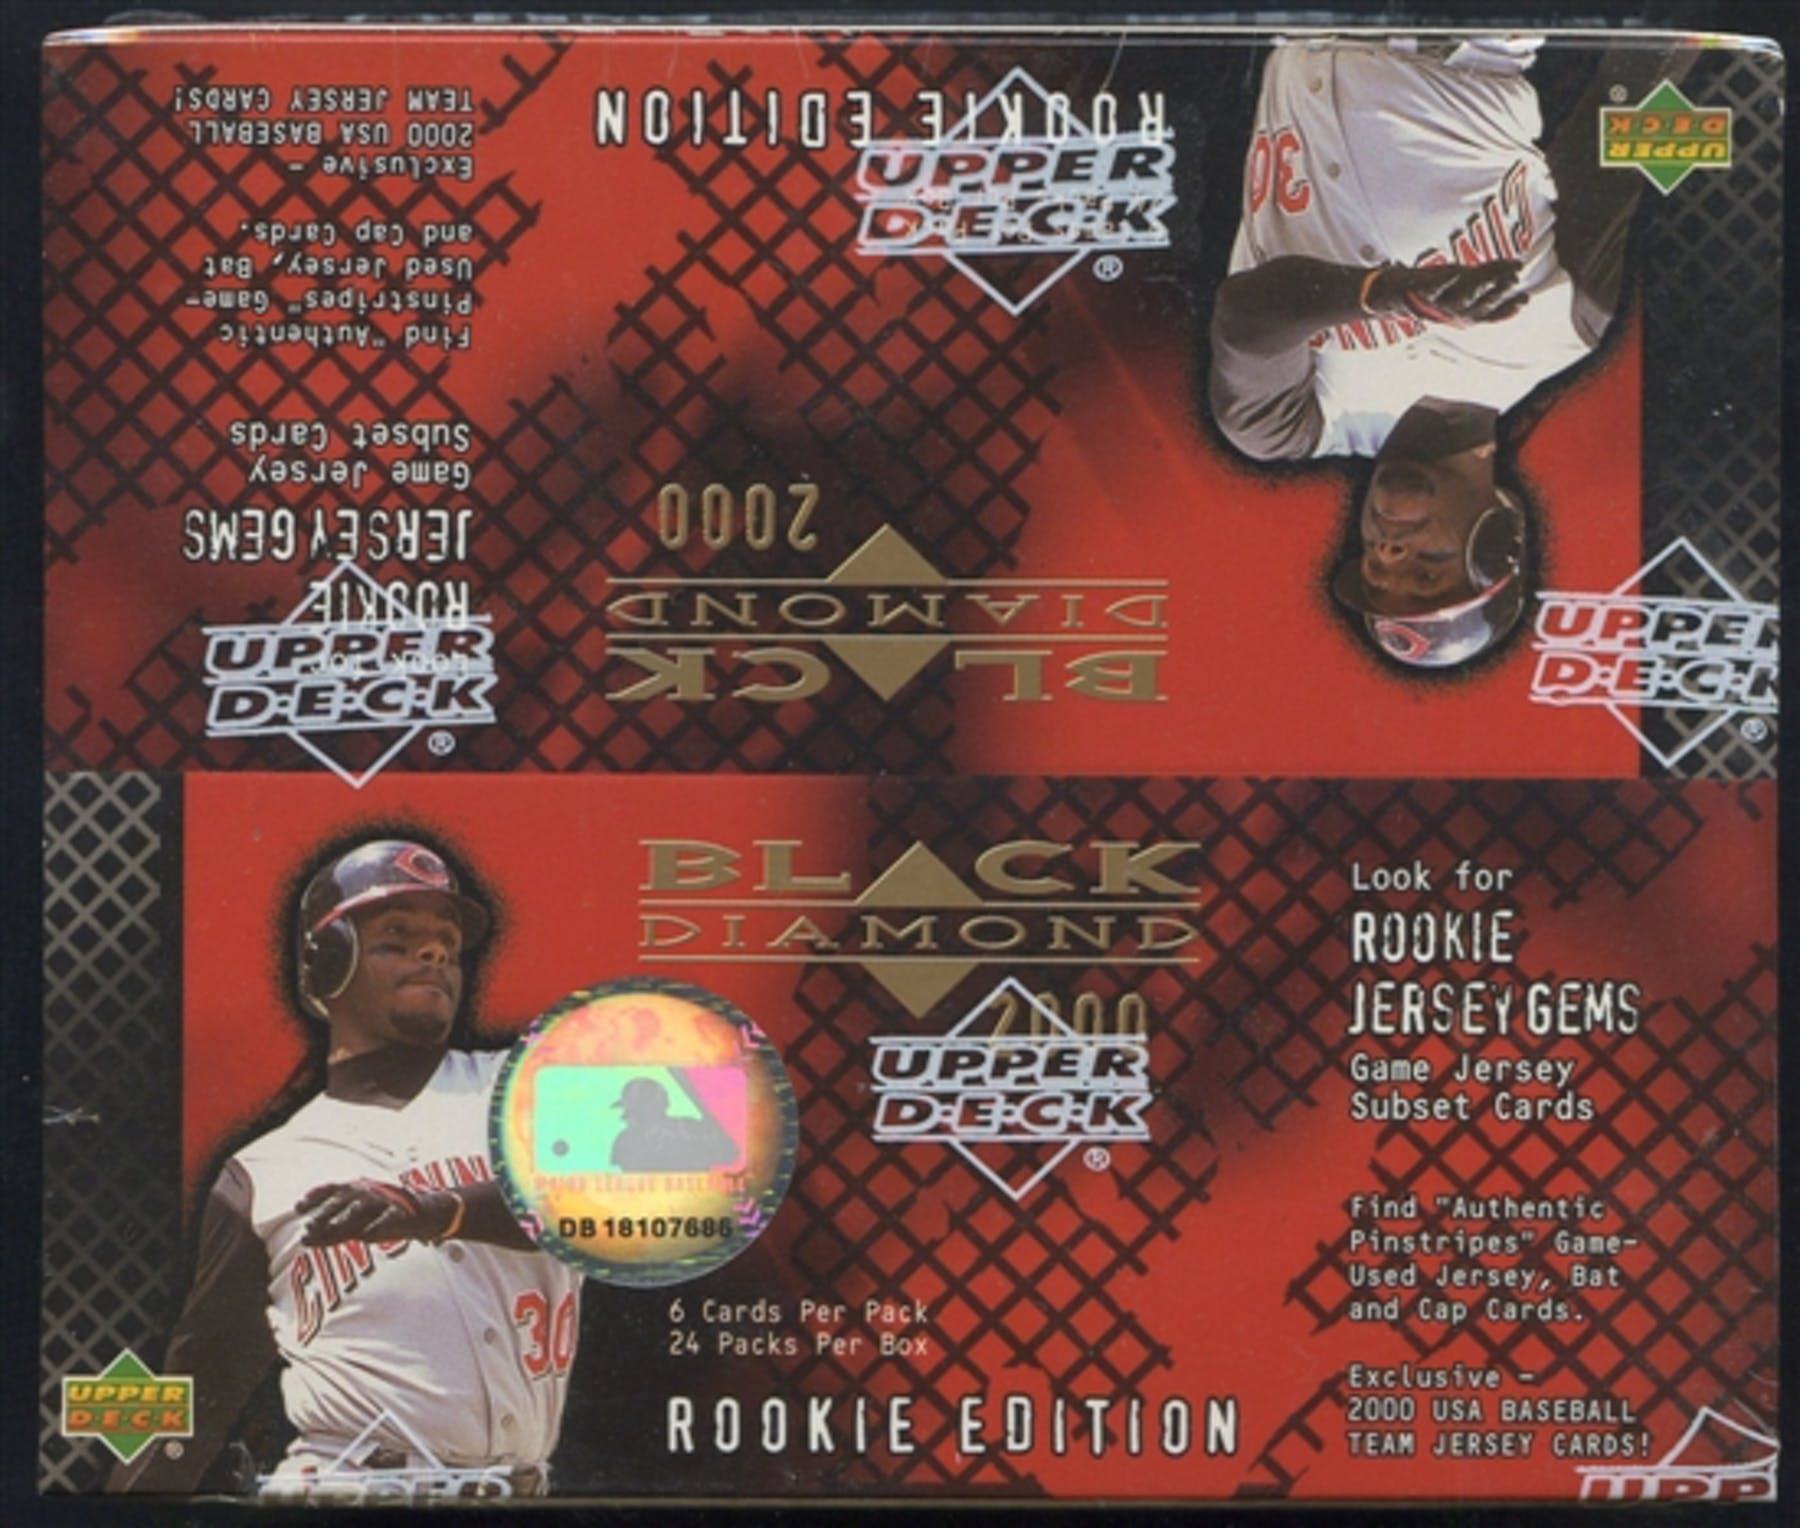 2000 Upper Deck Black Diamond Rookie Edition Baseball Retail Box | Eastridge Sports Cards